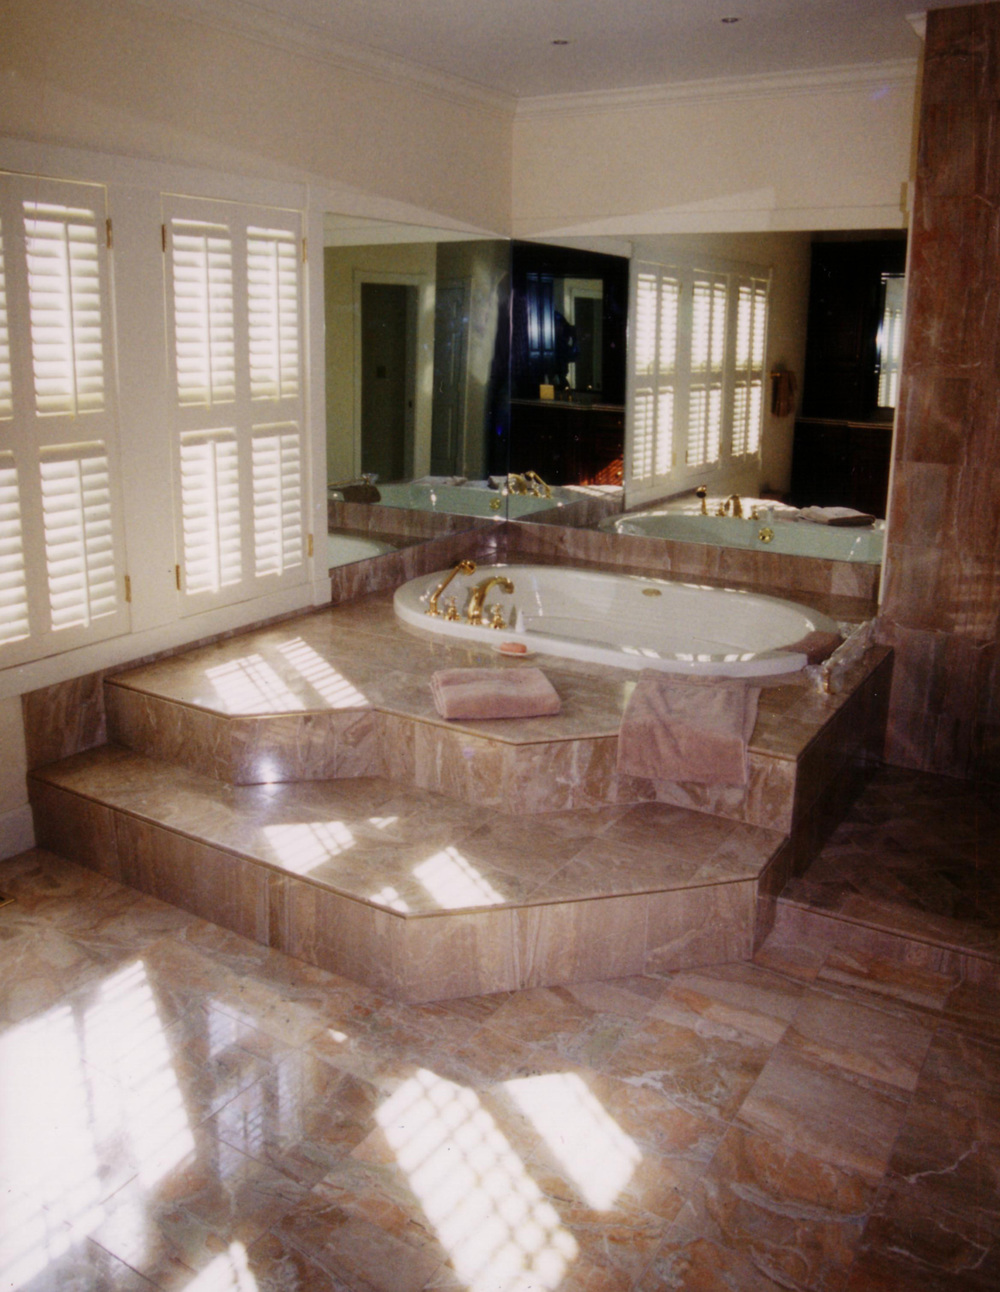 Luxury tub, private residence